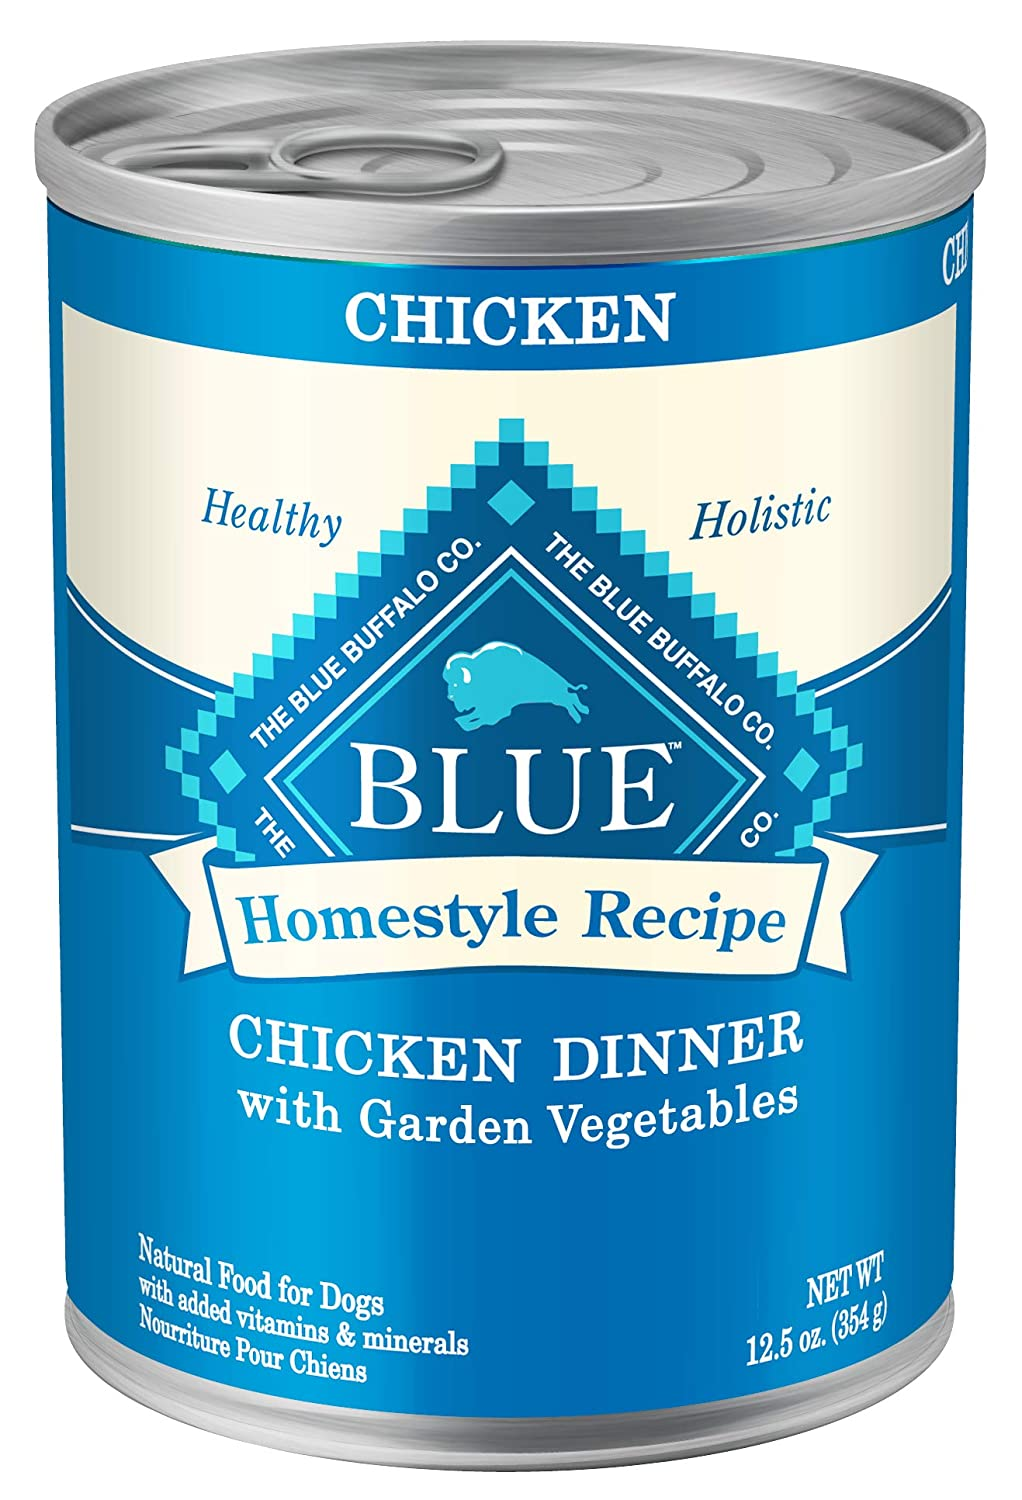 3. Blue Buffalo Homestyle Recipe Chicken Canned Dog Food